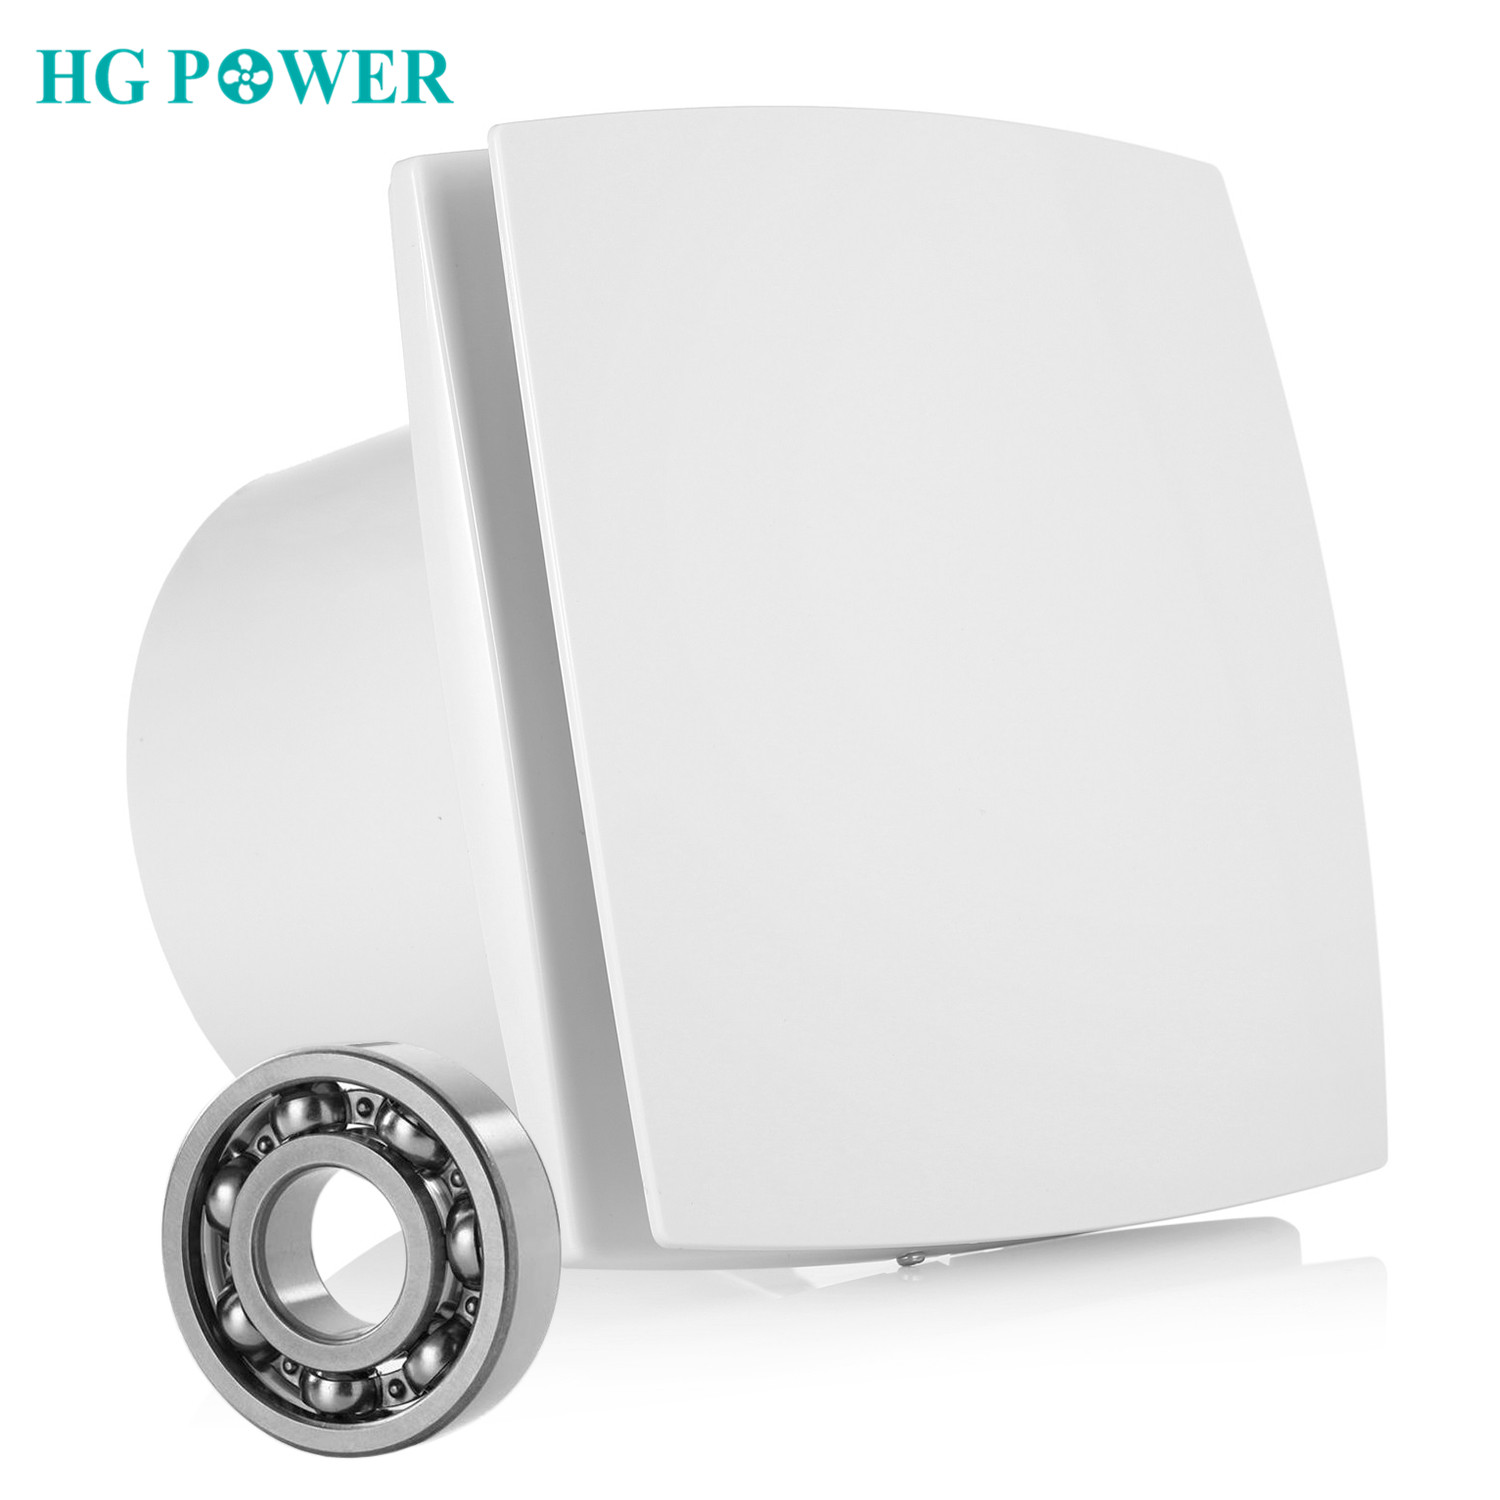 6inch Silent Toilet Exhaust Fan Home Bathroom Kitchen Toilet Fan Extractor Air Ventilation Low Noise Ventilator Wall Mounted Fan-in Vents from Home Improvement    1